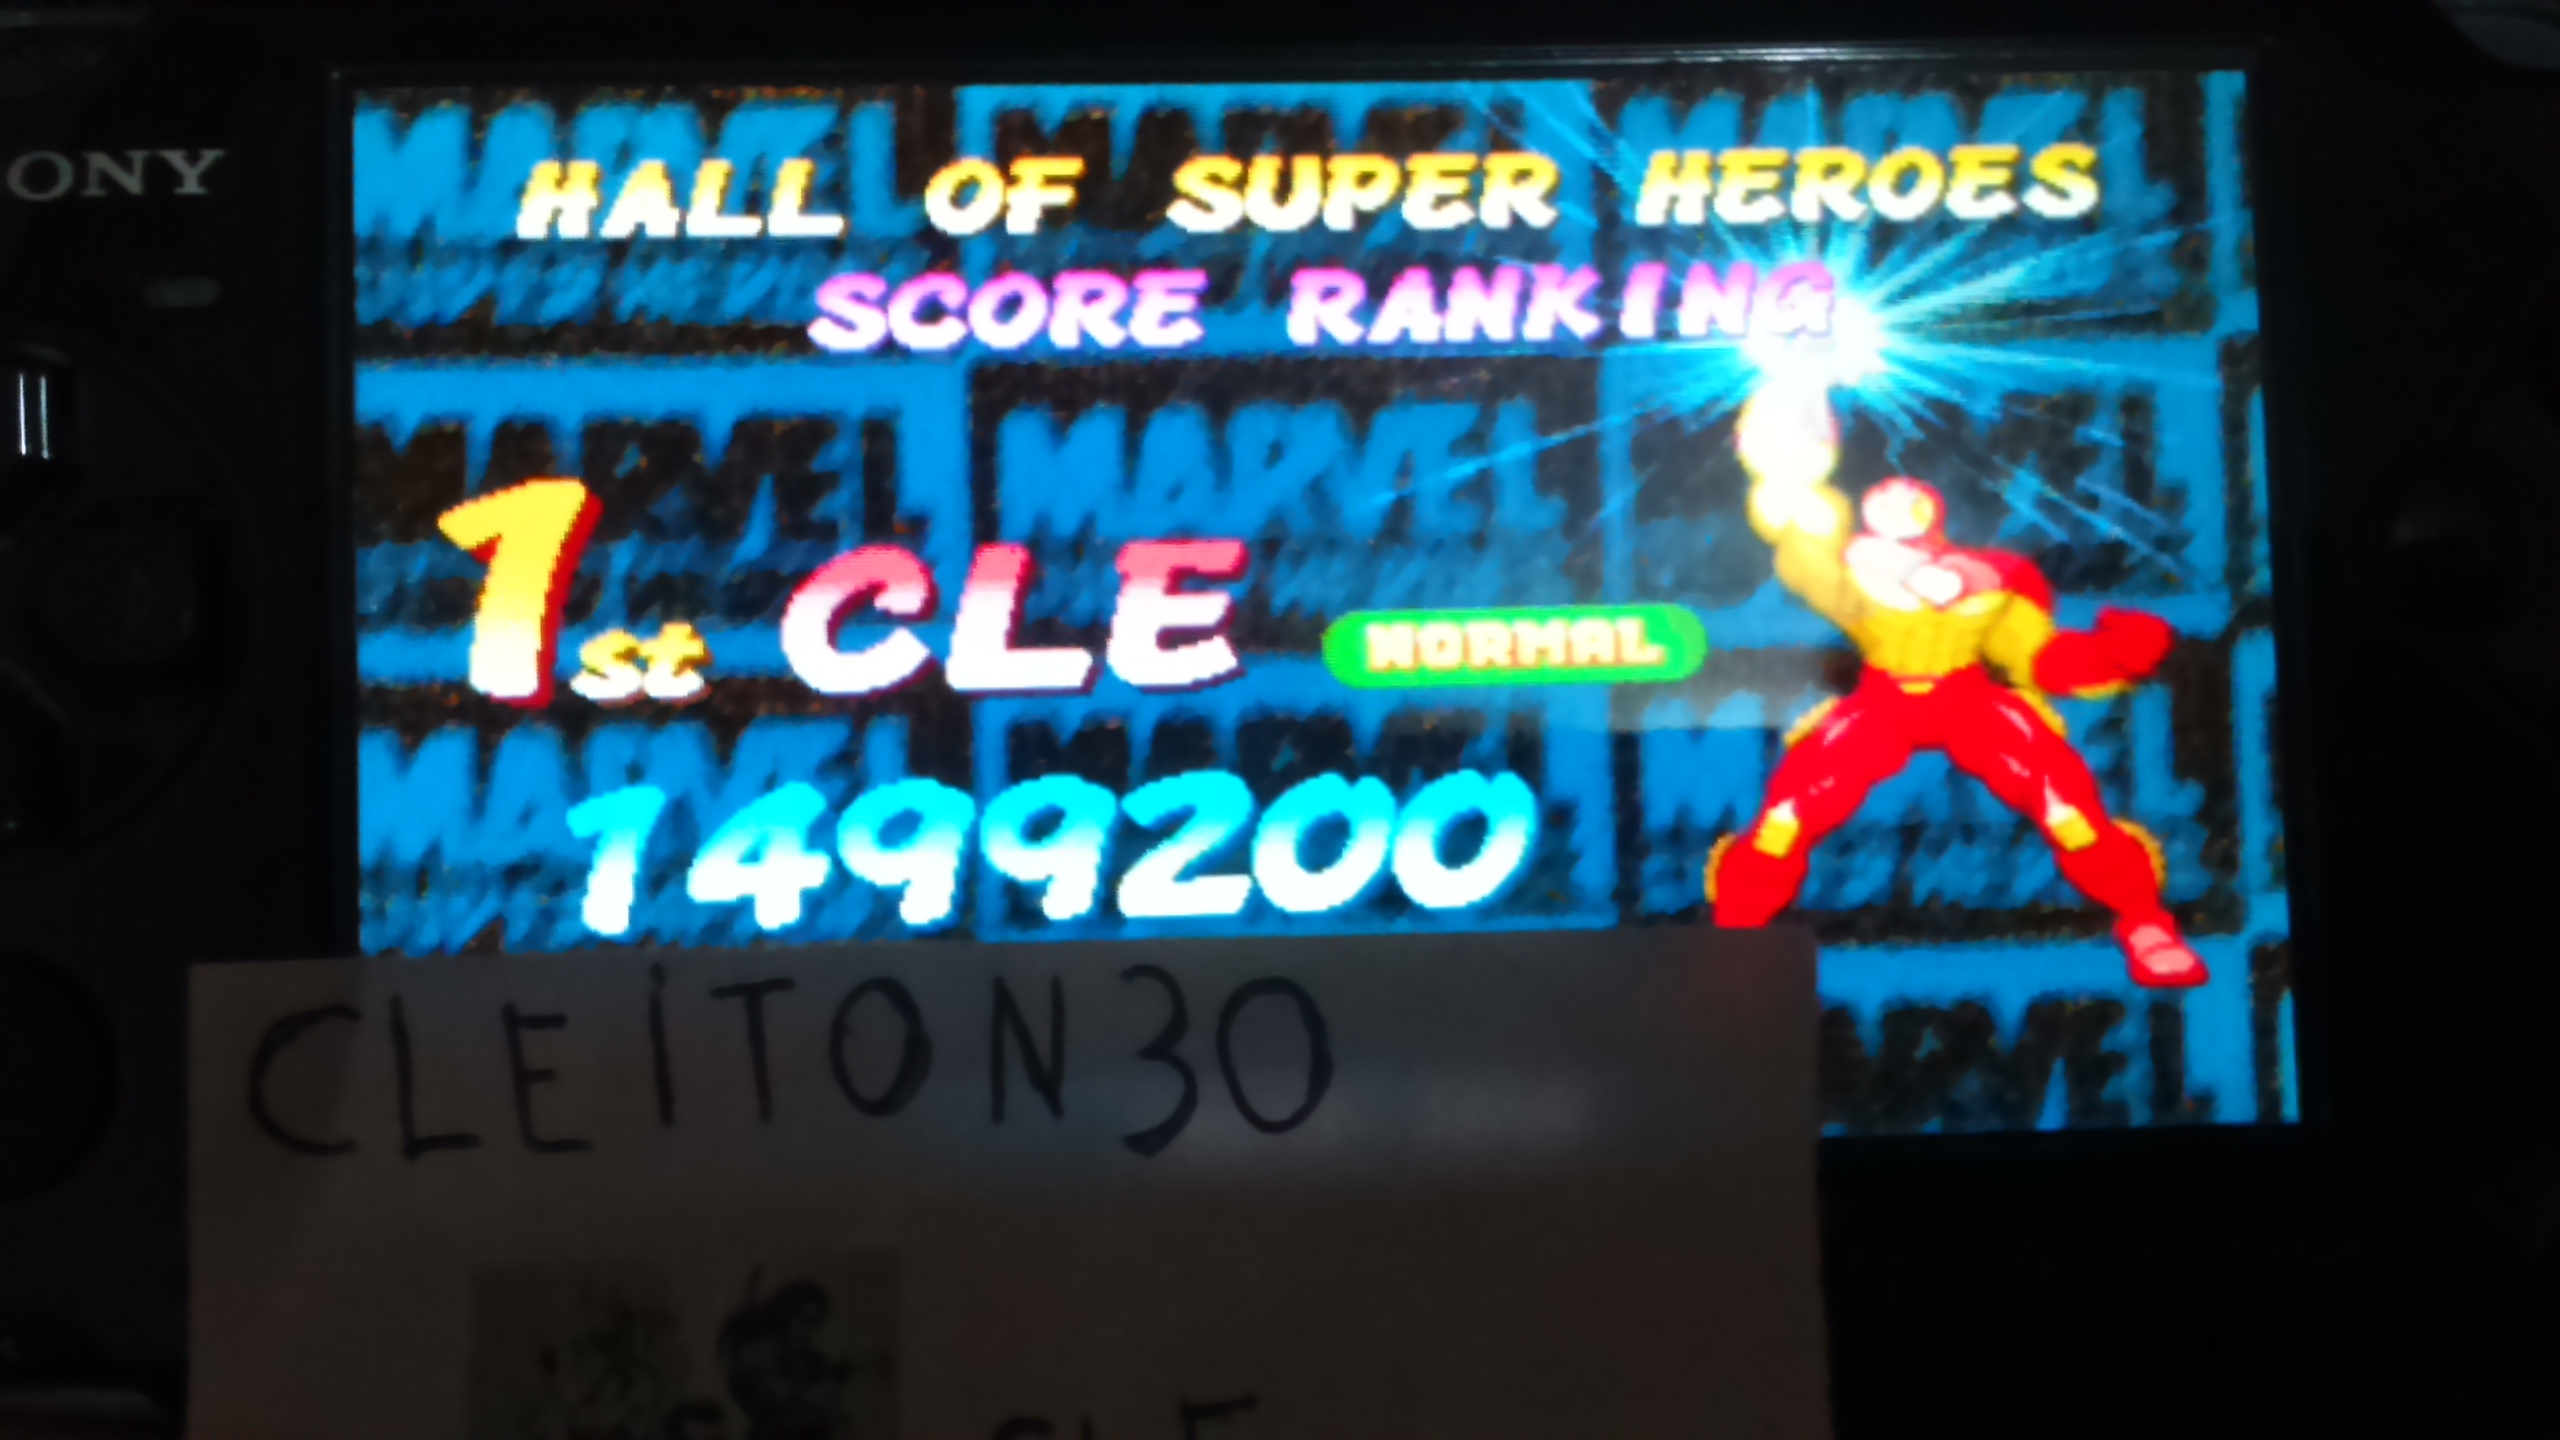 Cleiton30: Marvel Super Heroes [msh] (Arcade Emulated / M.A.M.E.) 1,499,200 points on 2016-05-21 17:35:53